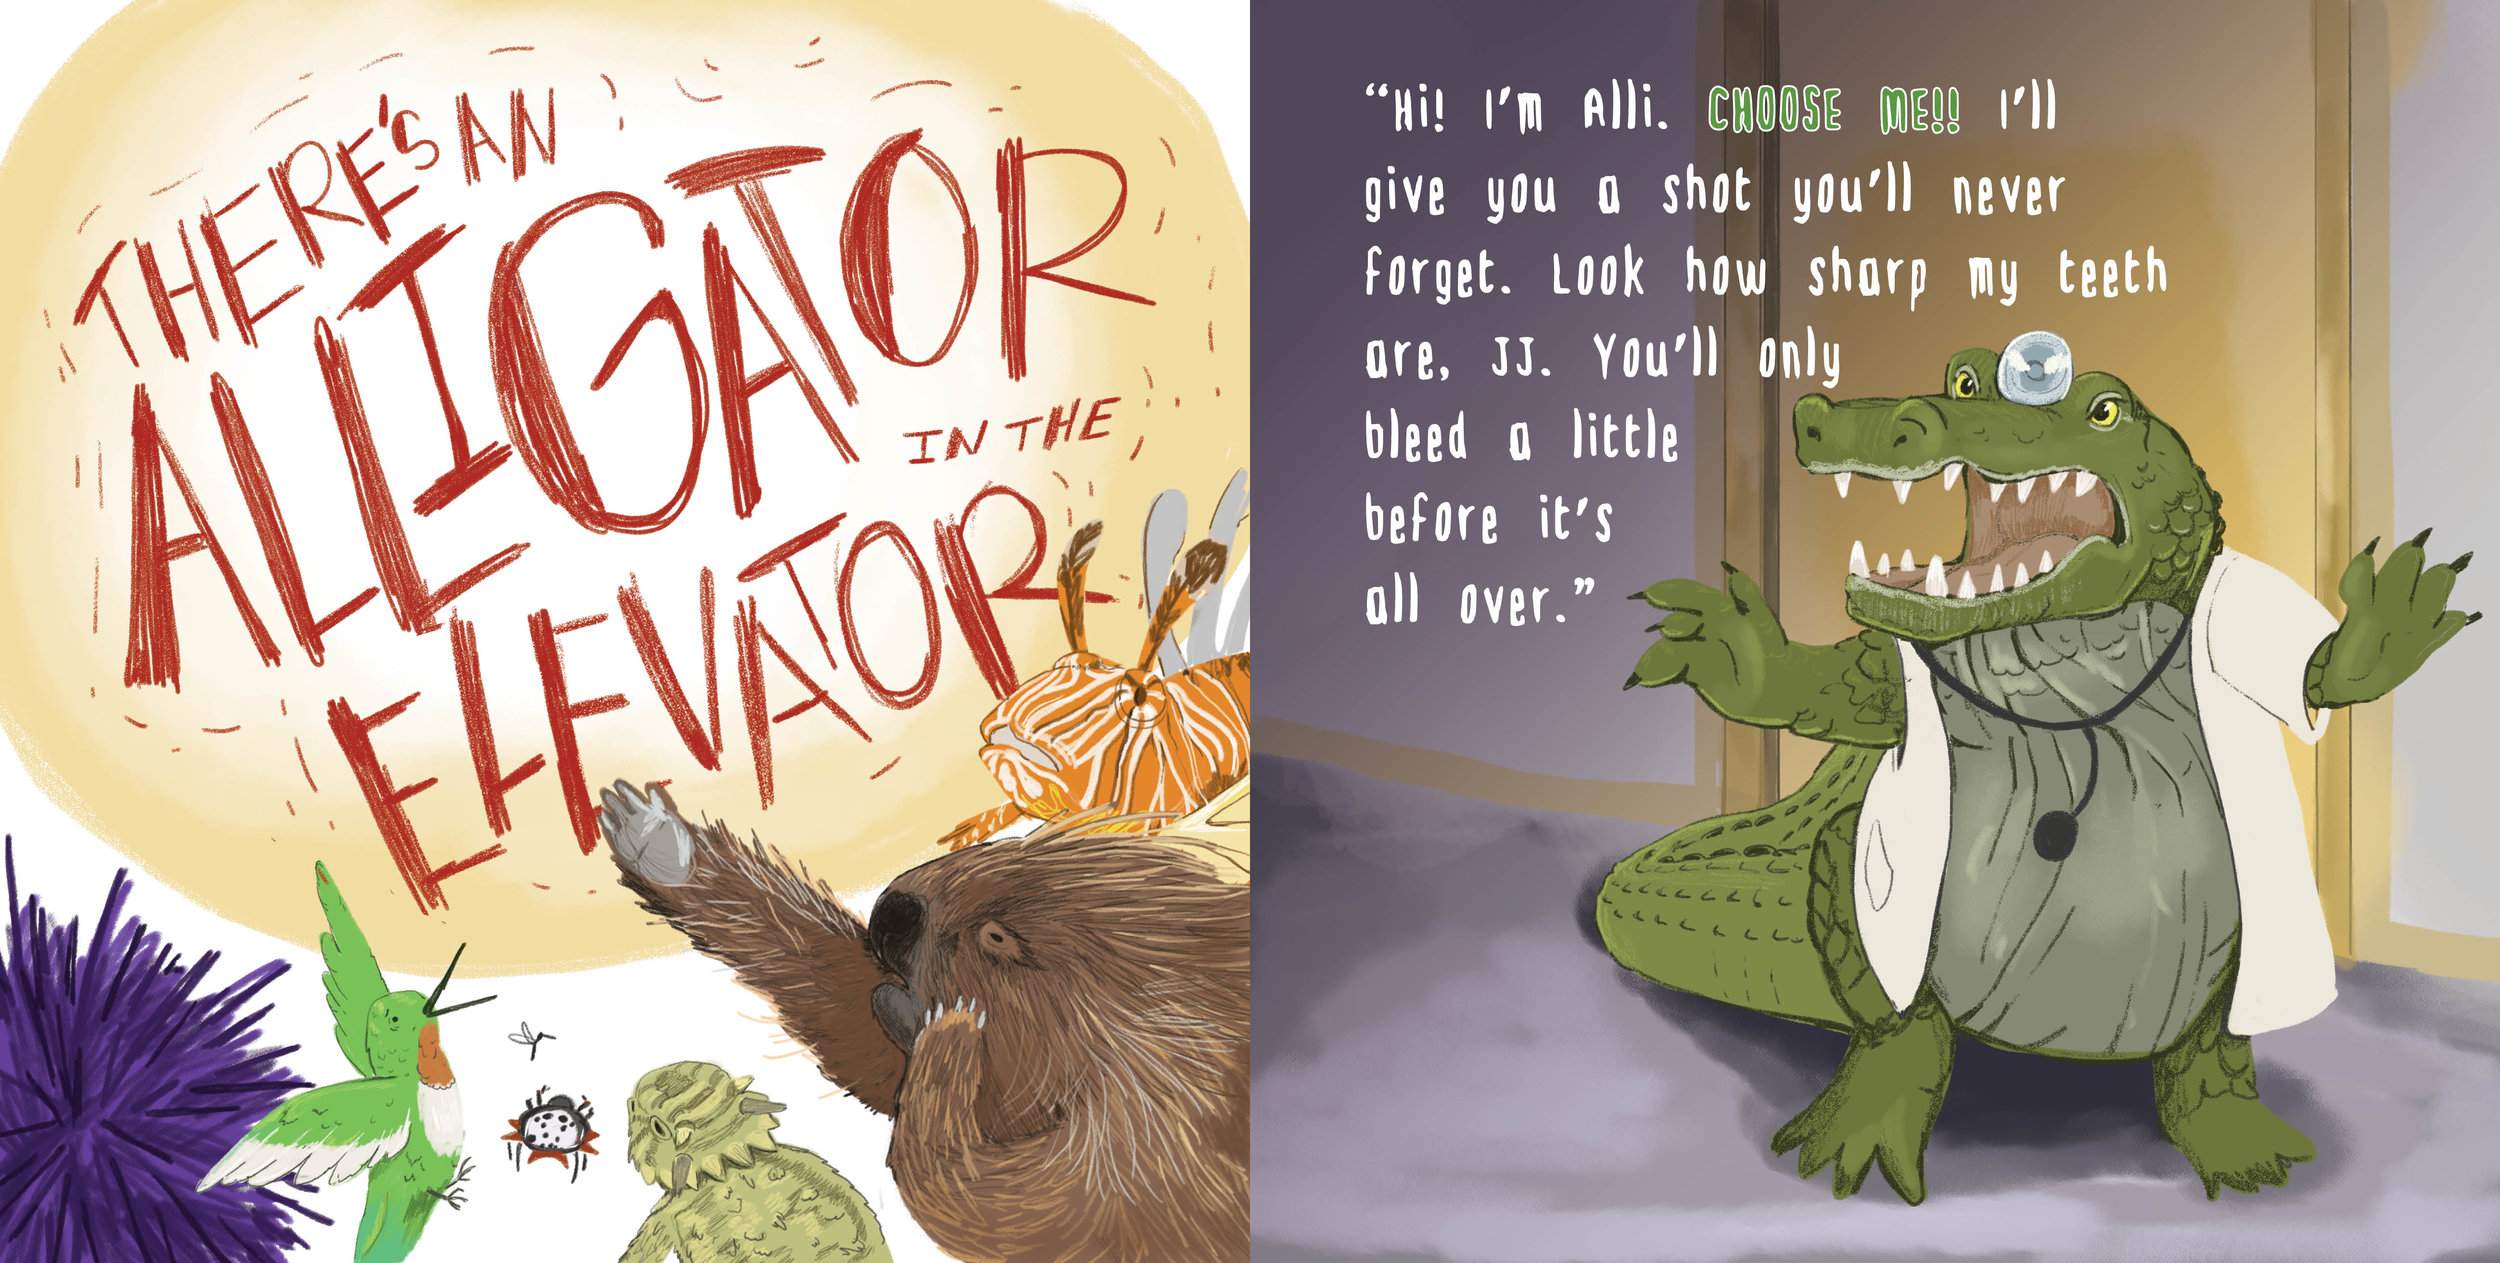 A spread from  There's an Alligator in the Elevator!  Digital illustration and layout design by me